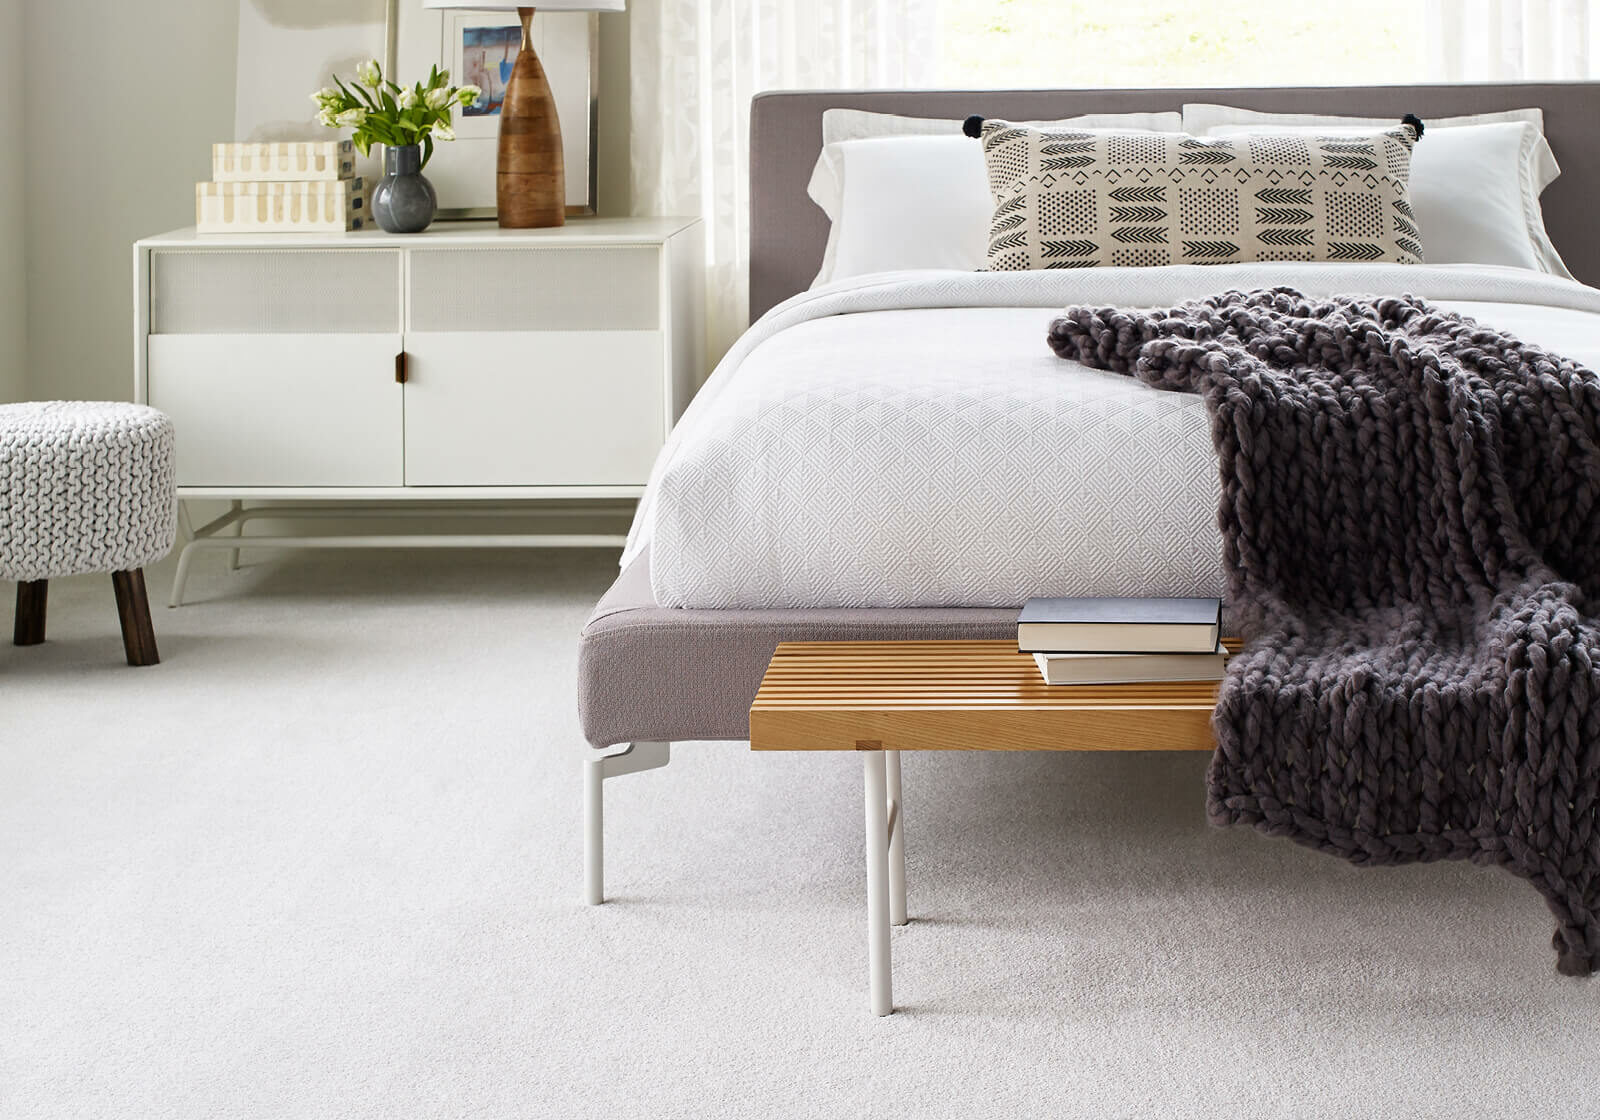 Bedroom Carpet | TUF Flooring LLC